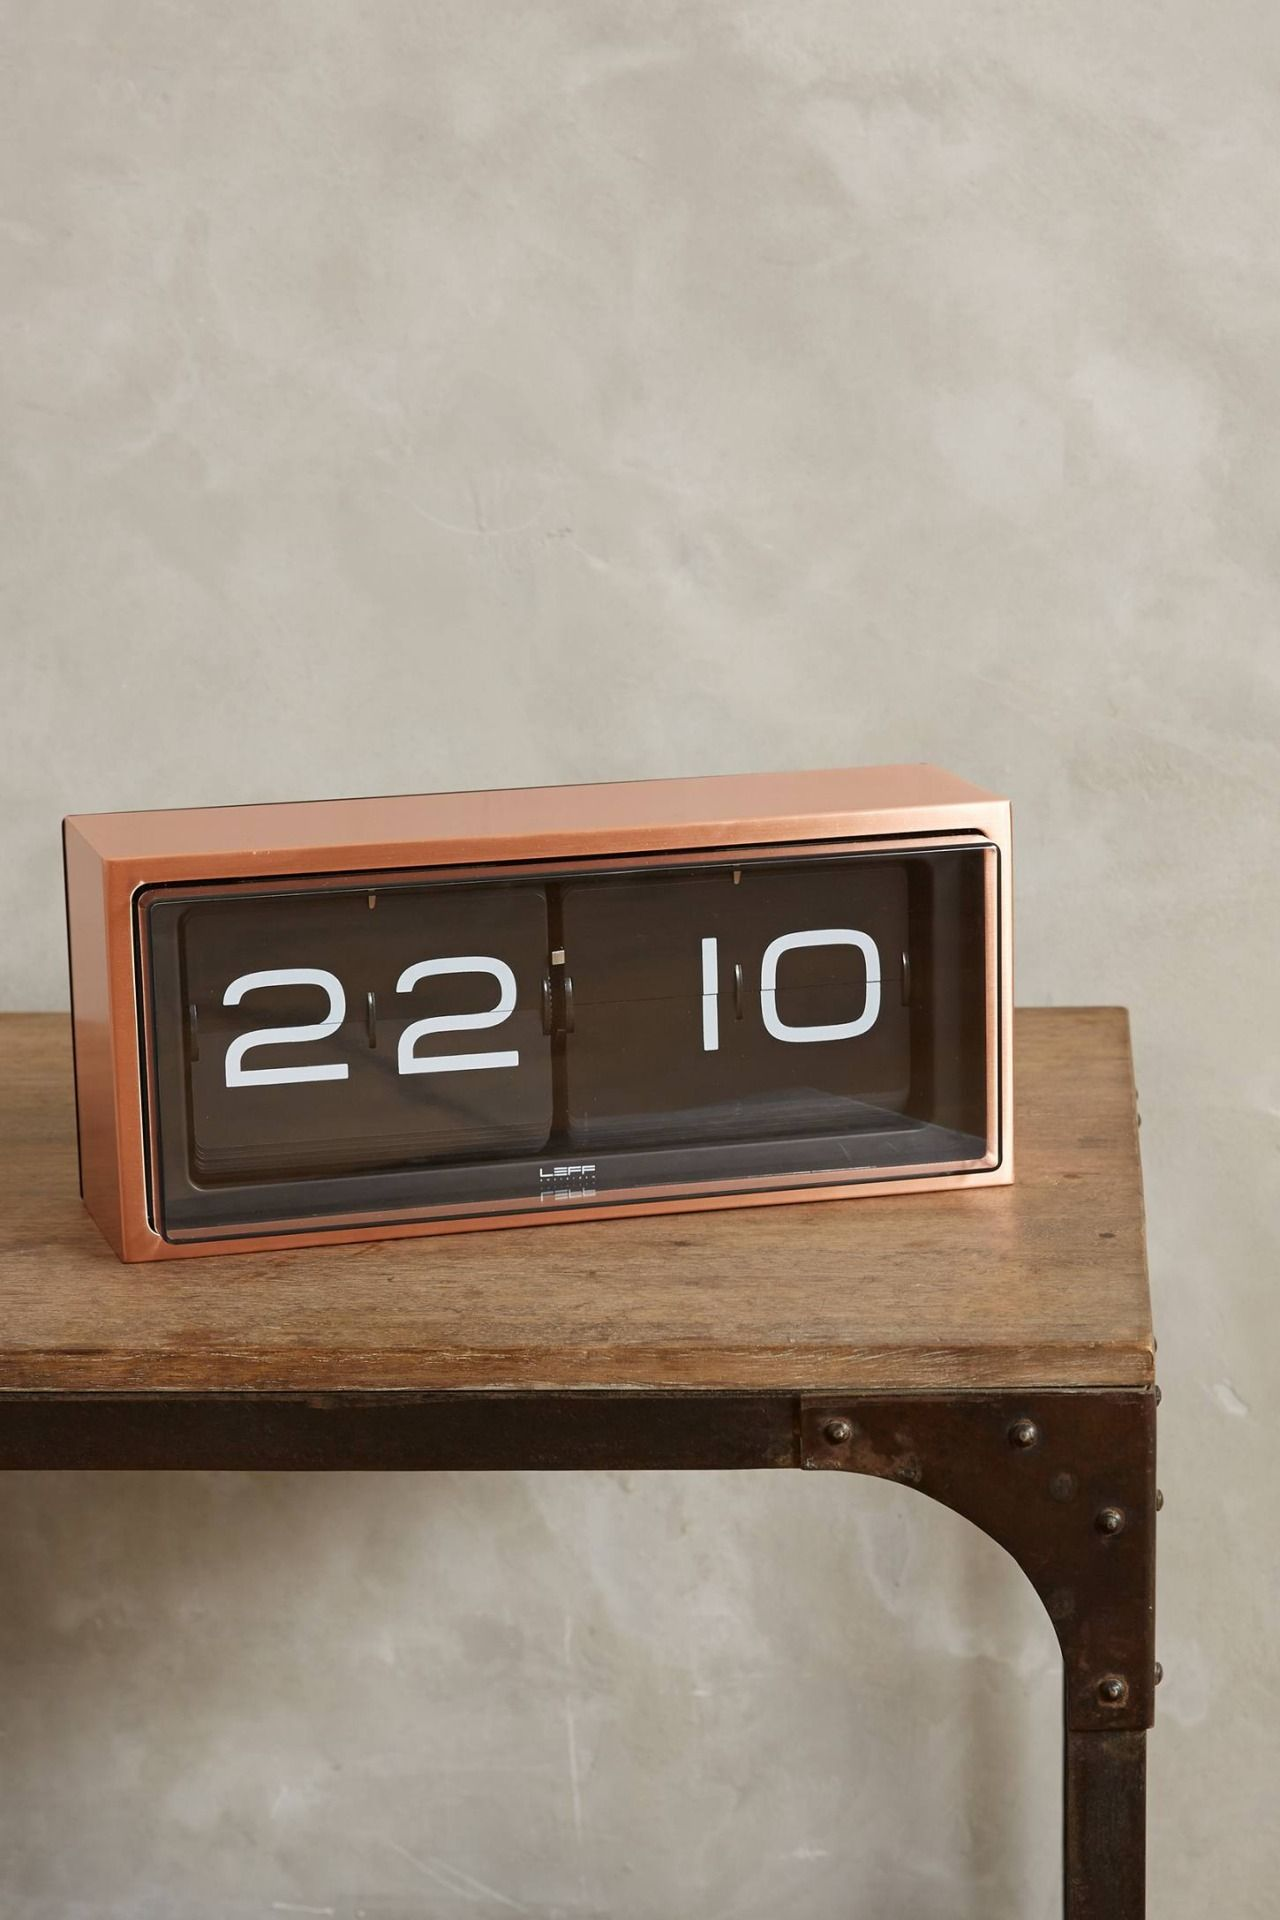 Superior LEFF Amsterdam Brick Wall/Desk Clock | Copper/Black Good Looking